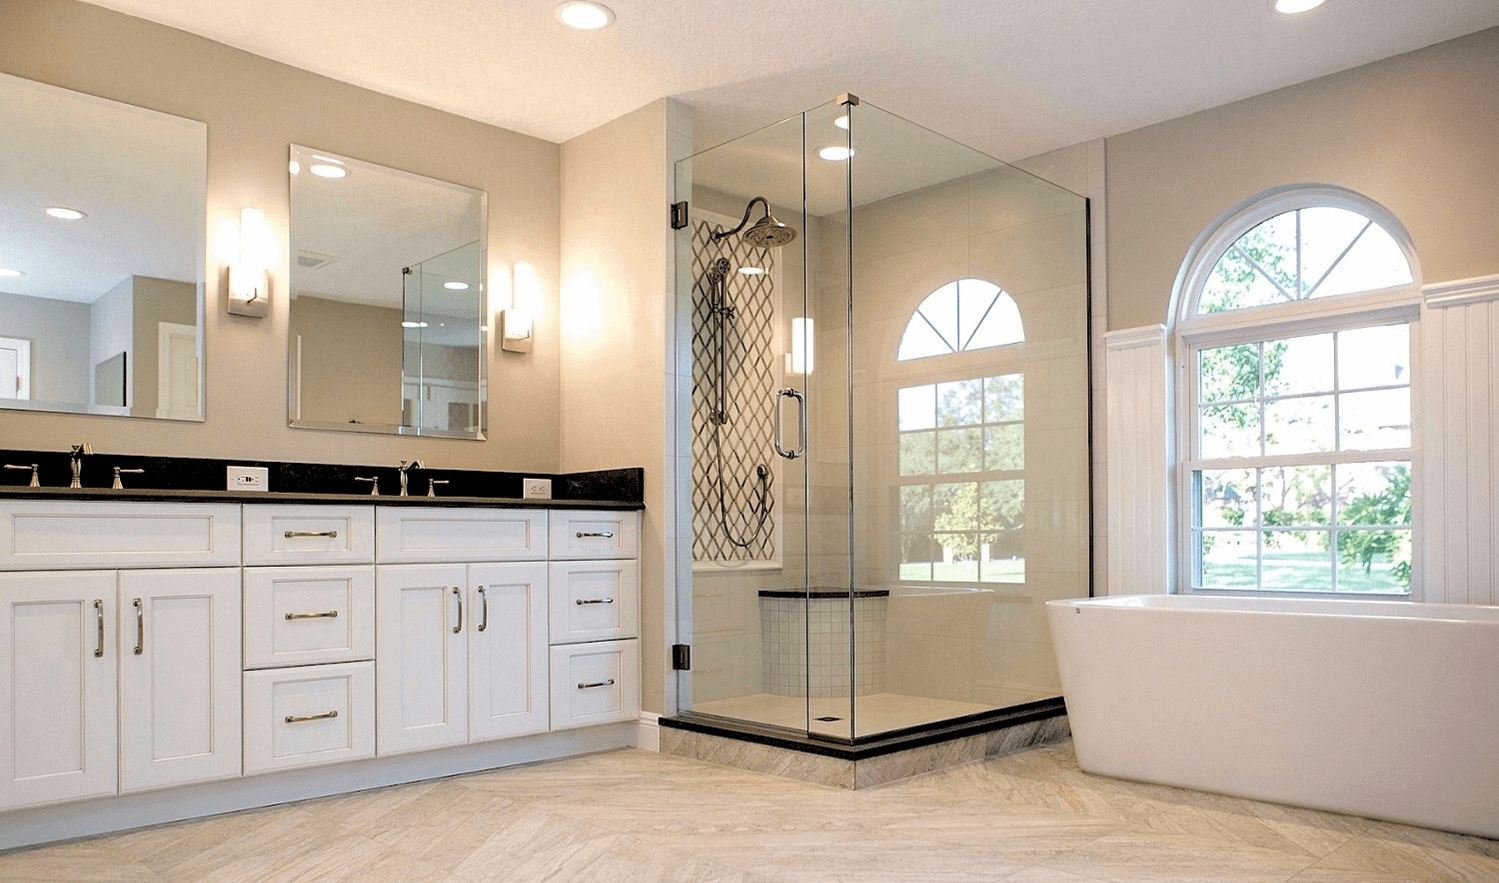 Bathroom Remodeling Orlando kitchen & bathroom remodeling services in orlando | kbf design gallery